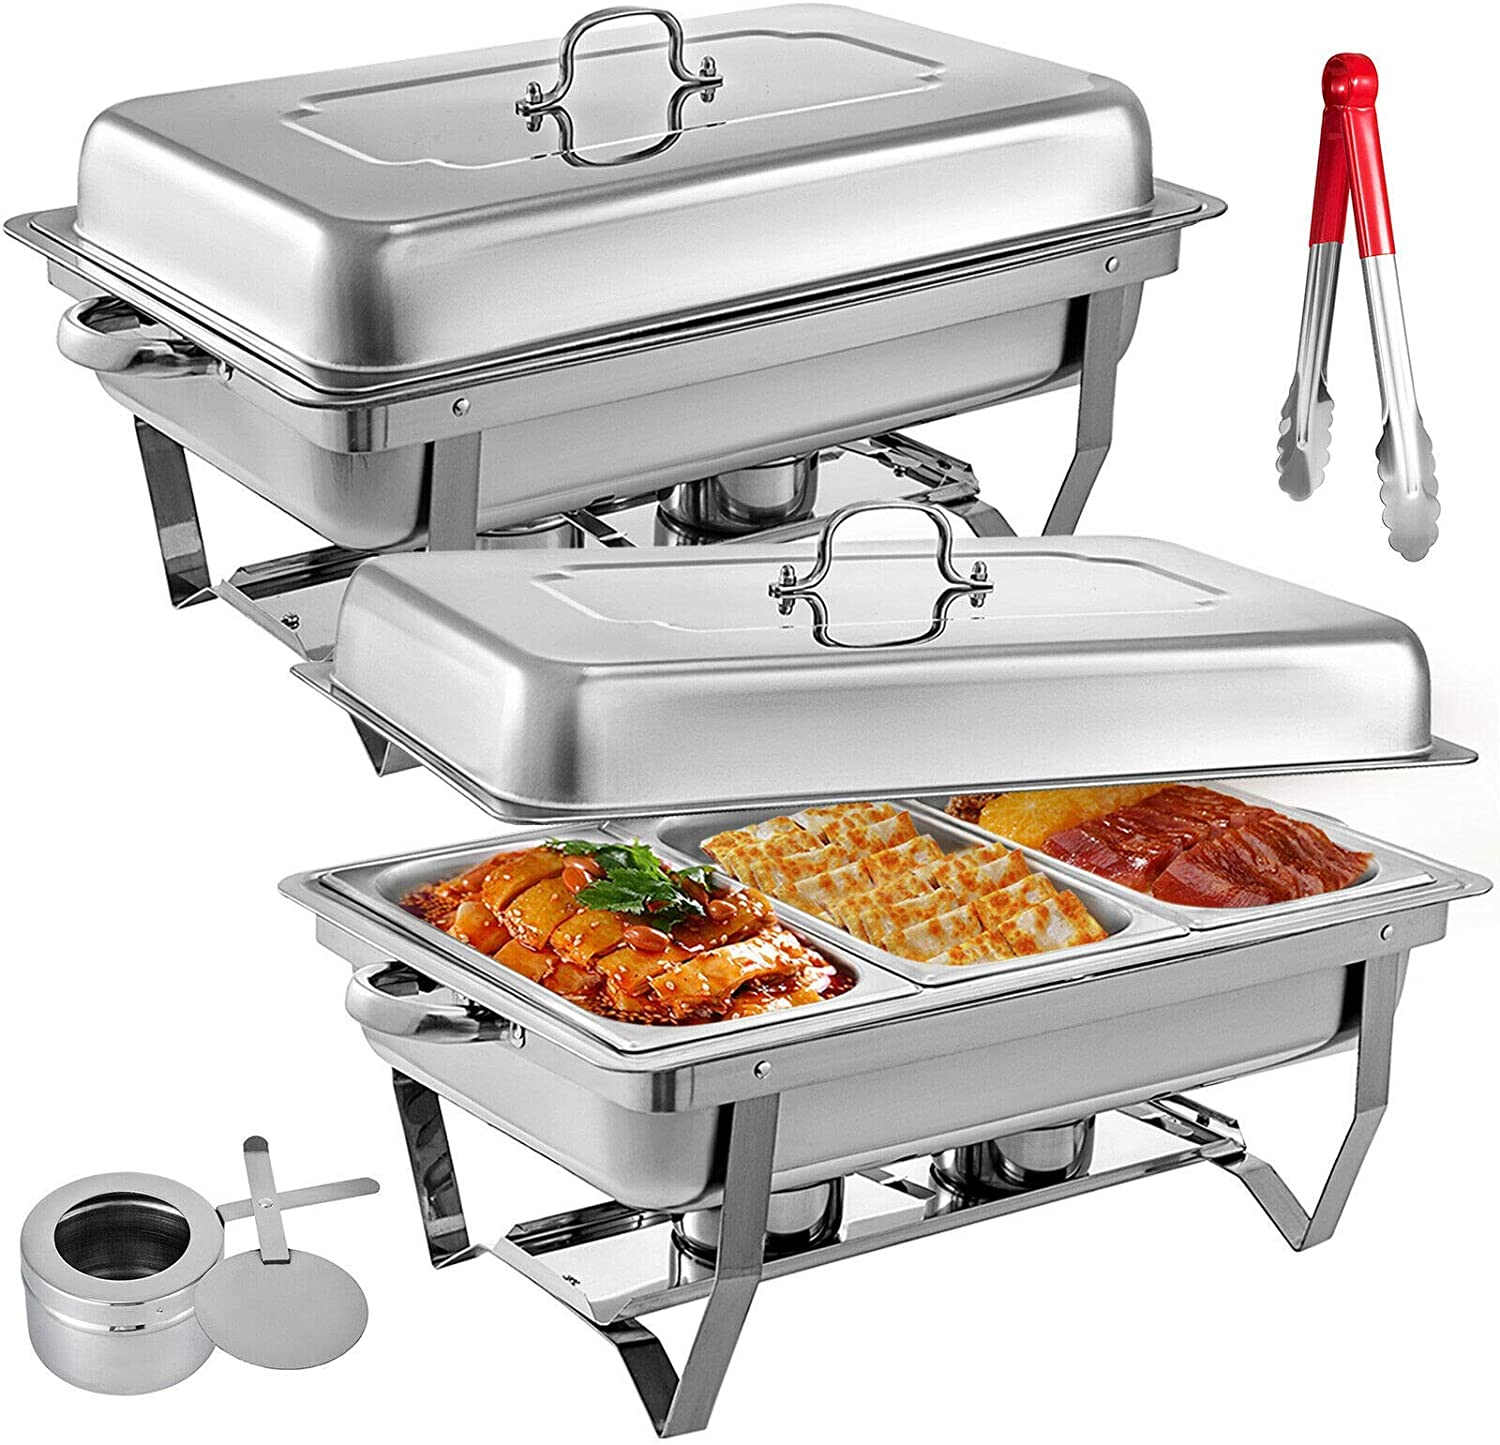 2 Packs Stainless Steel Chafing Dishes 3 1 in 3rd Size Pans 8 Quart Rectangular Chafer Complete Set Buffet Tray Food Warmer